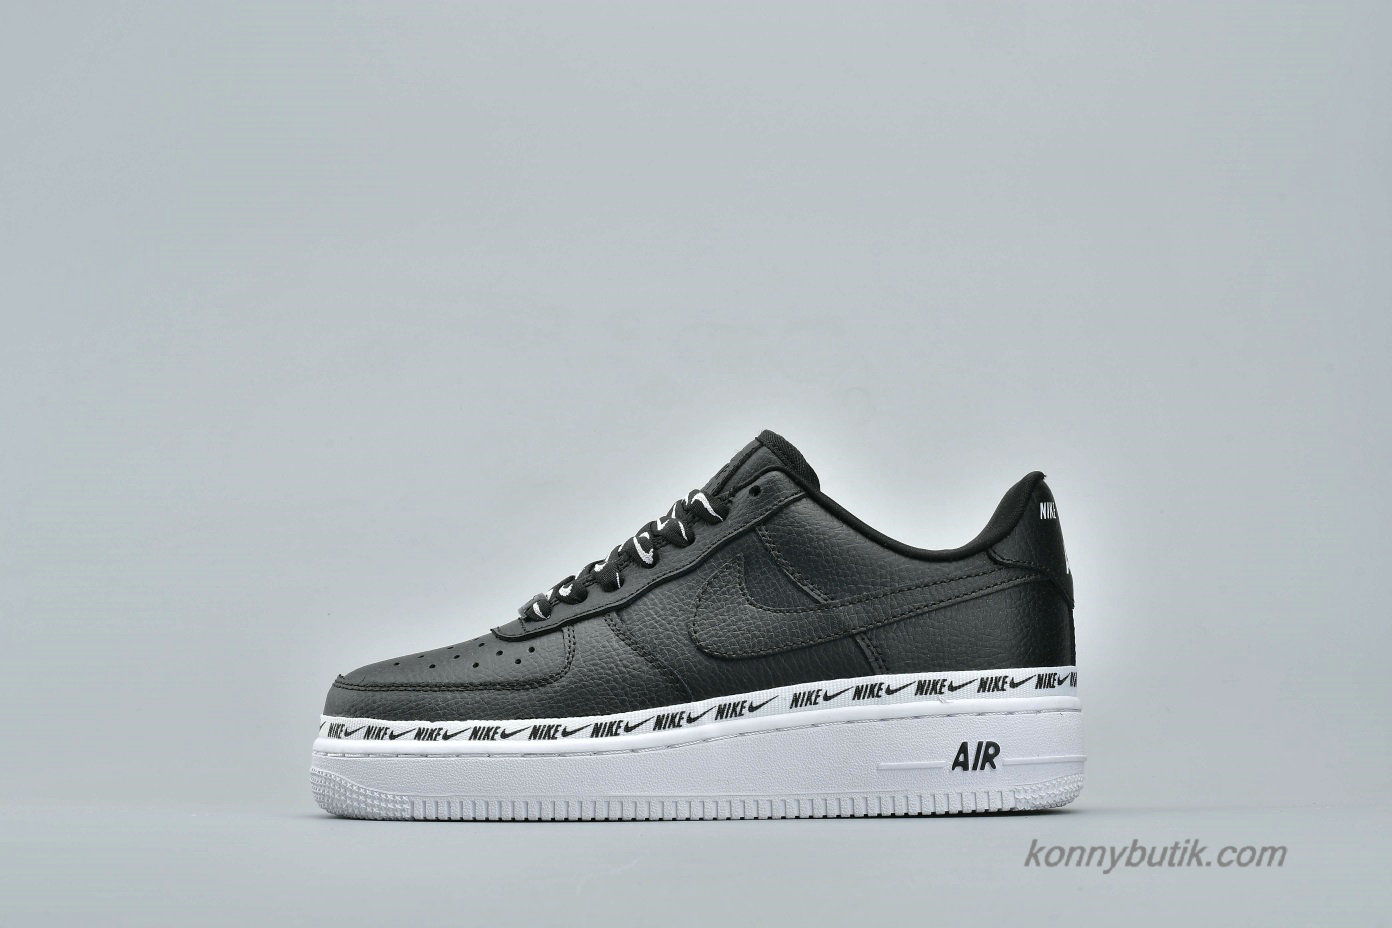 Nike Air Force 1 07 SE PRM Low Unisex Sko Sort / Hvid (AH6827-002)